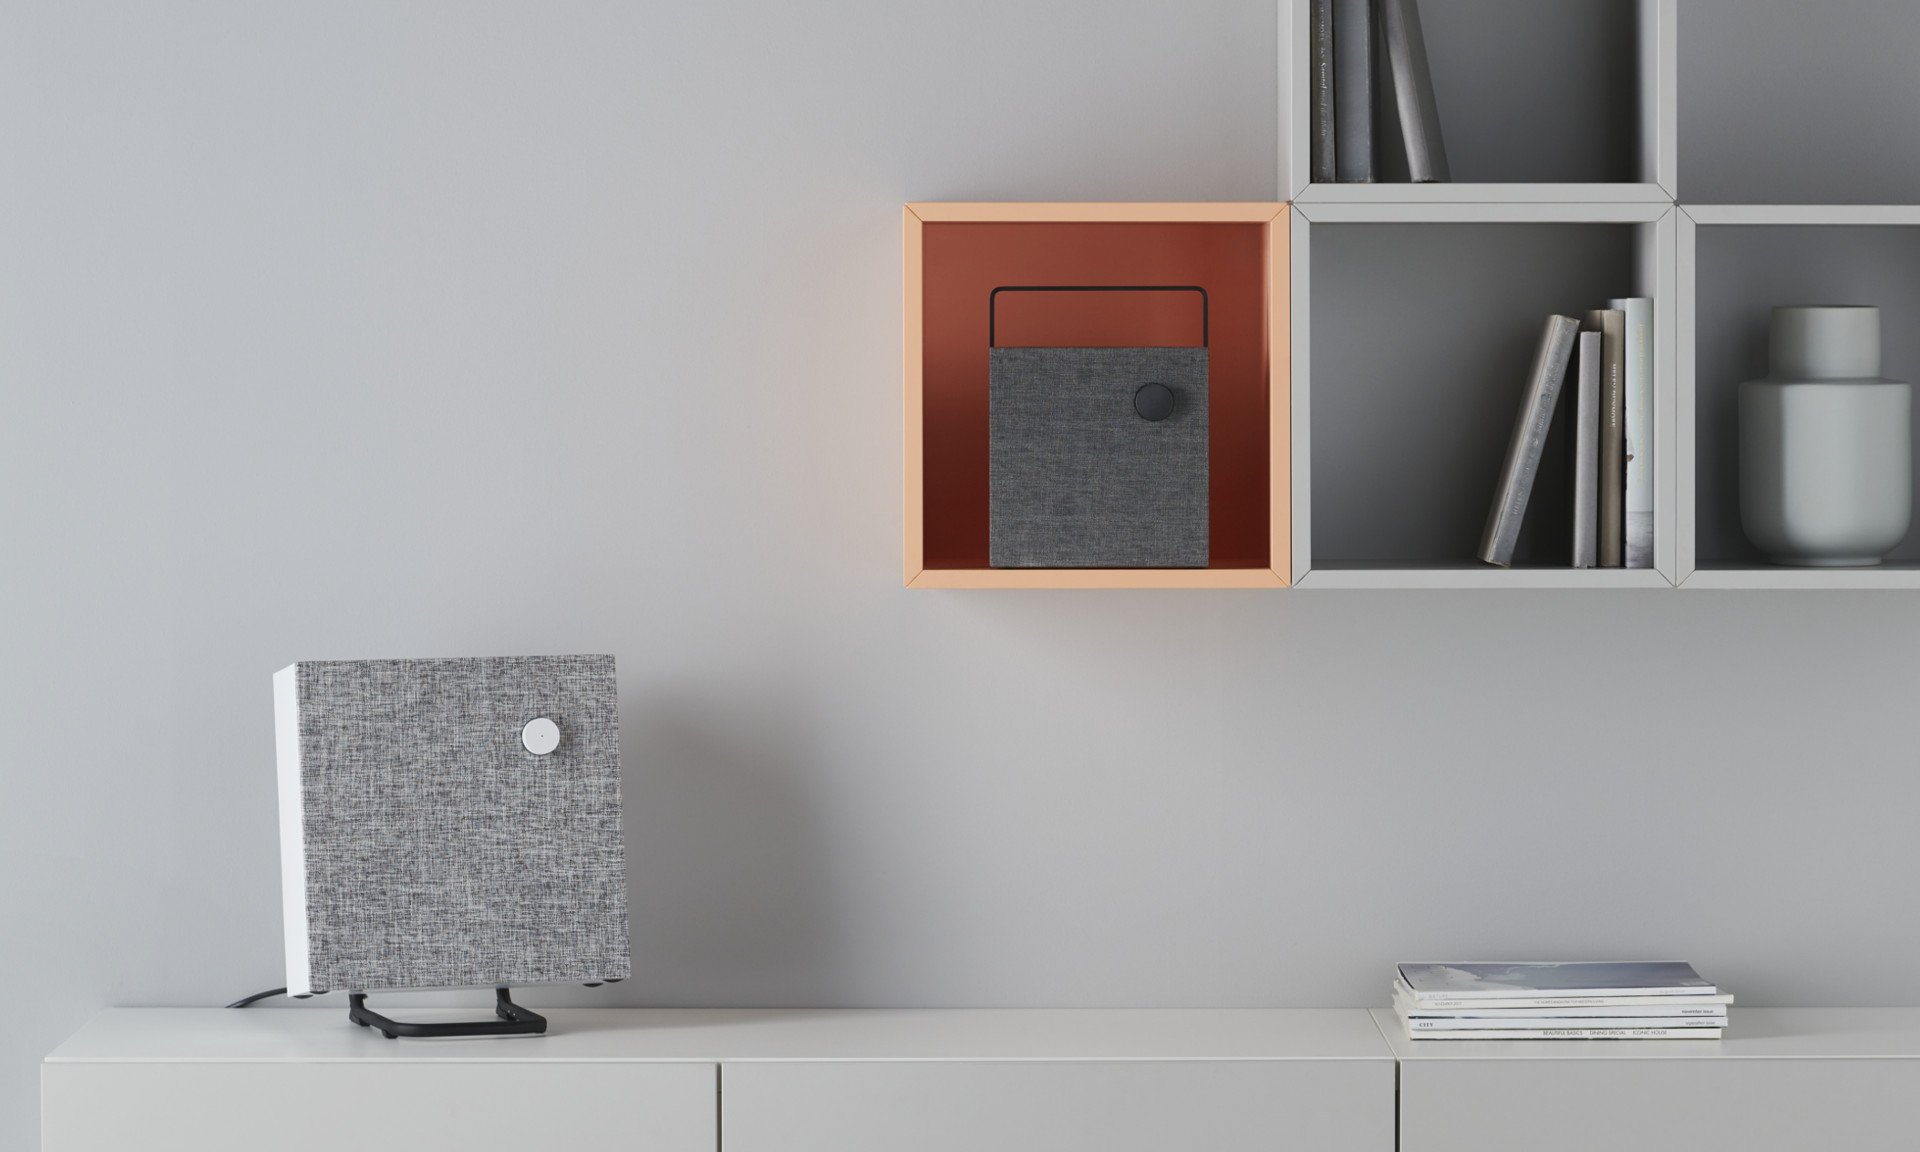 Ikea Bank Bad Ikea Unveils Own Brand Bluetooth Speakers Which News